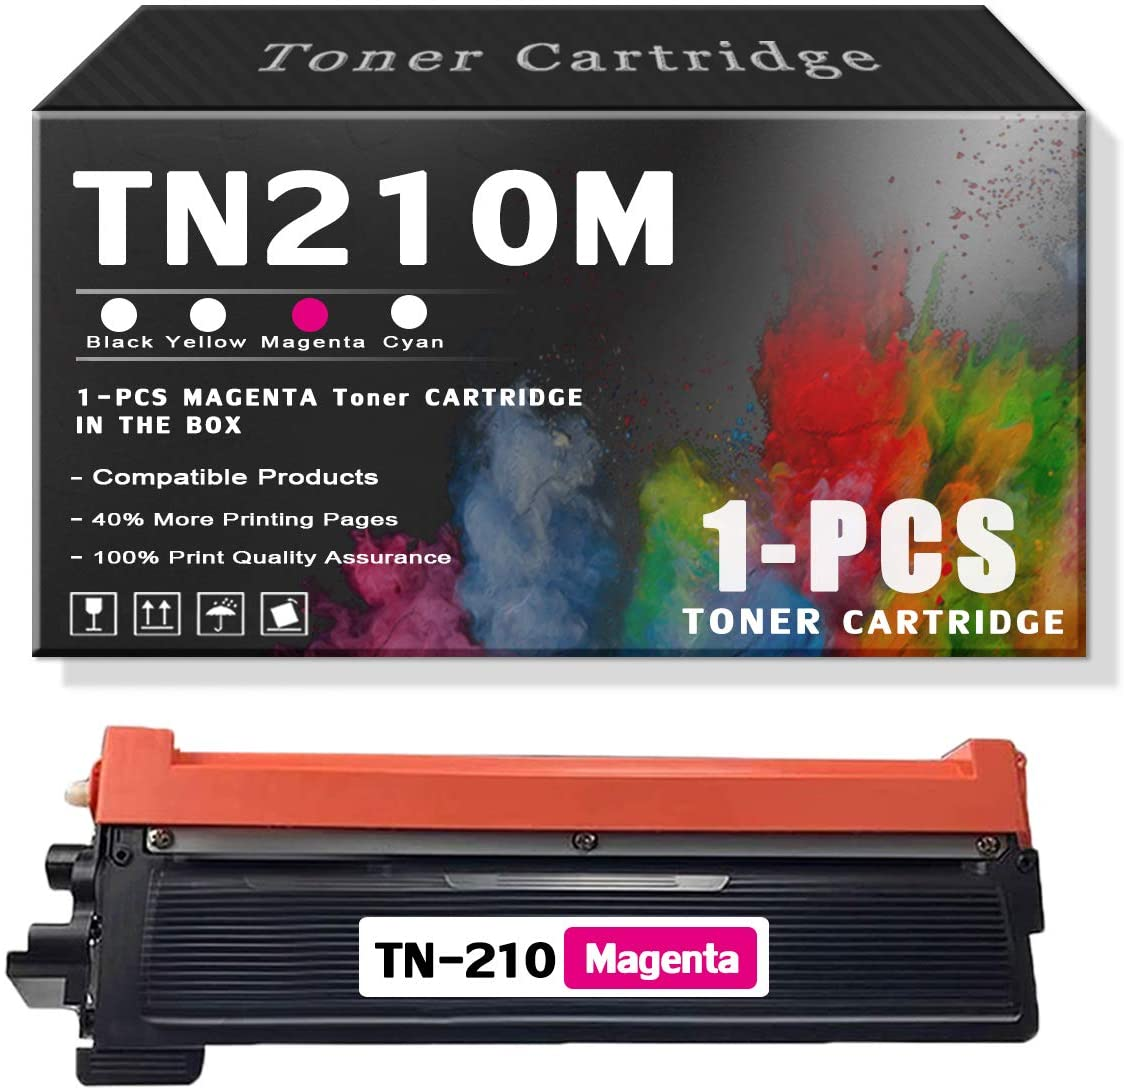 Magenta 1-PackTN210M TonerCartridgeCompatible for Brother InkCartridgeReplacementforBrother HL-3040CN 3045CN 3070CW MFC-9010CN 9120CN DCP-9010CNPrinters.